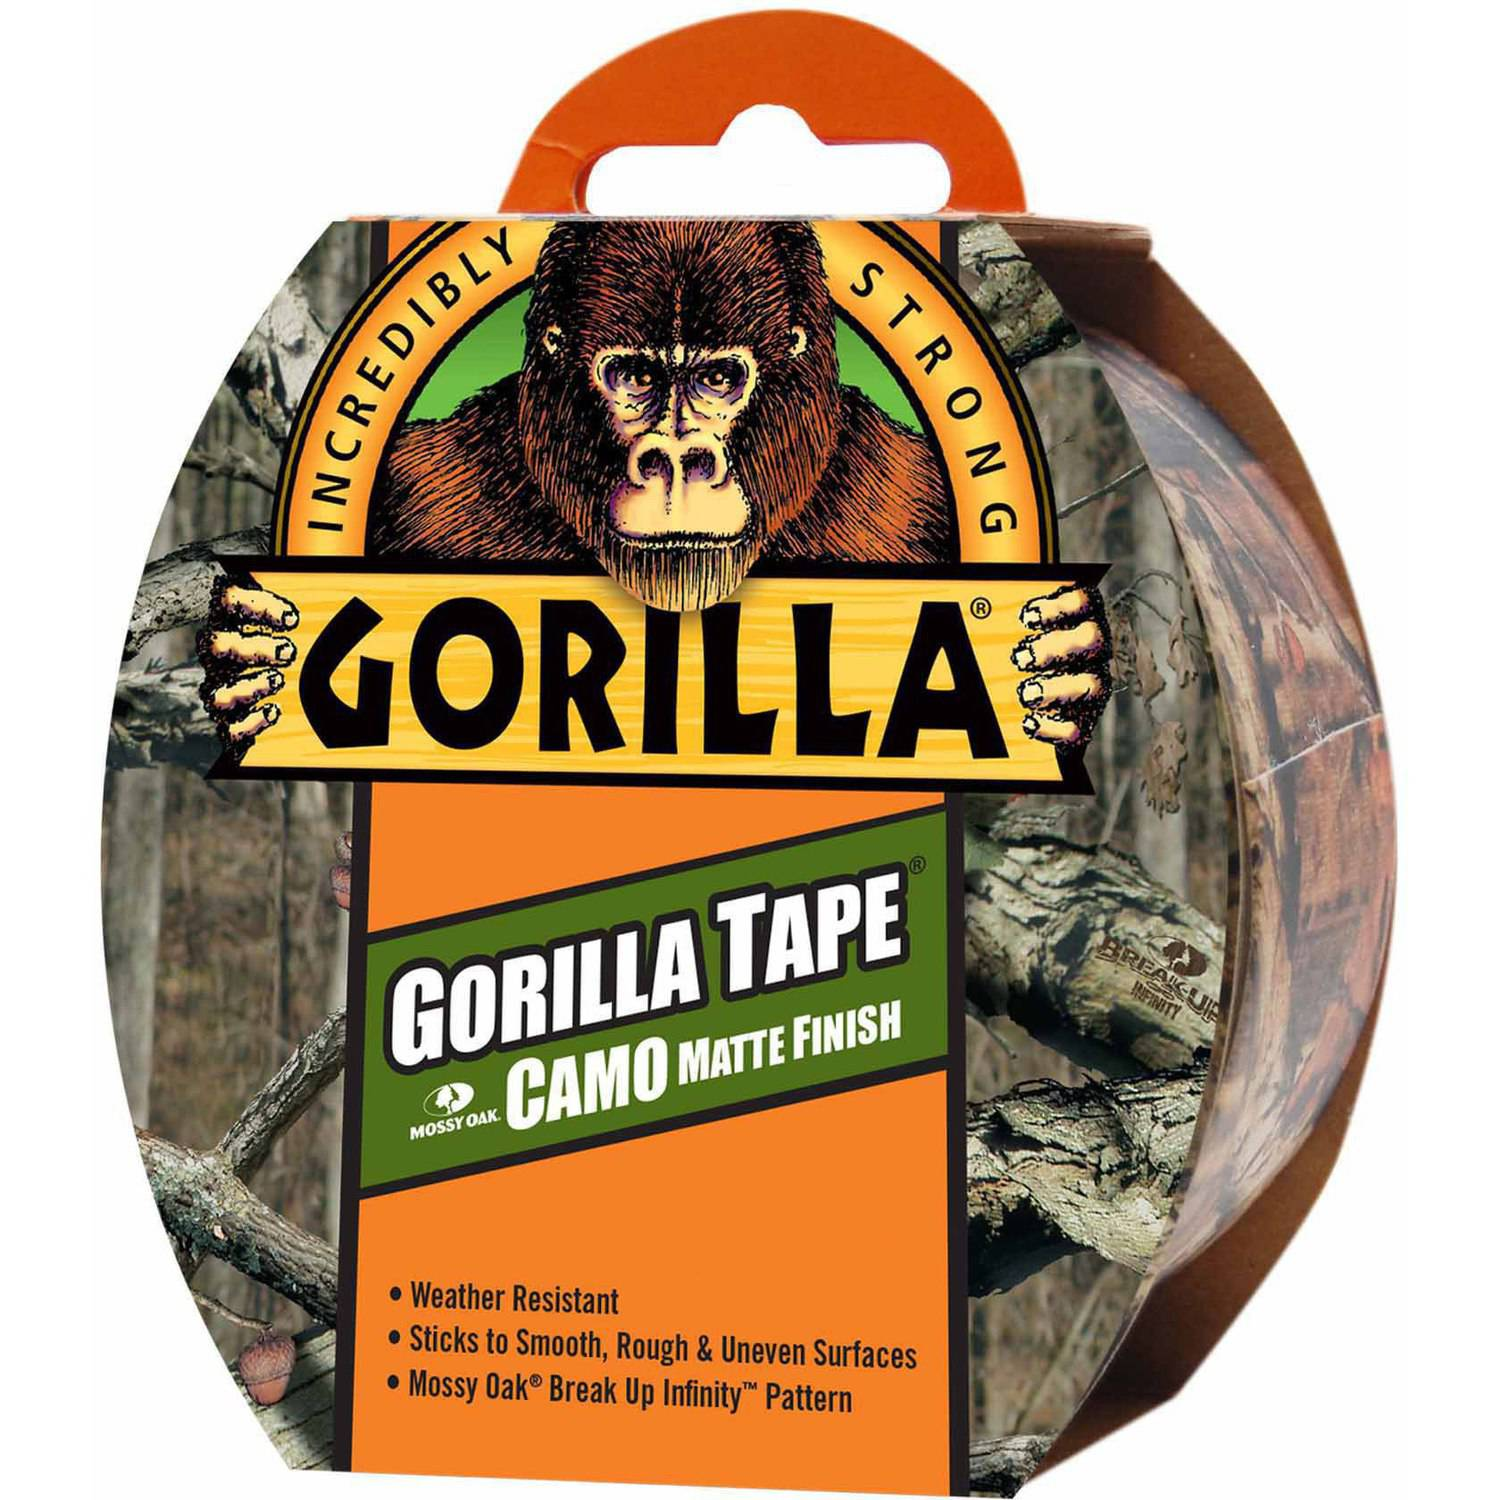 Gorilla Tape, Camo Matte Finish, 9 yds